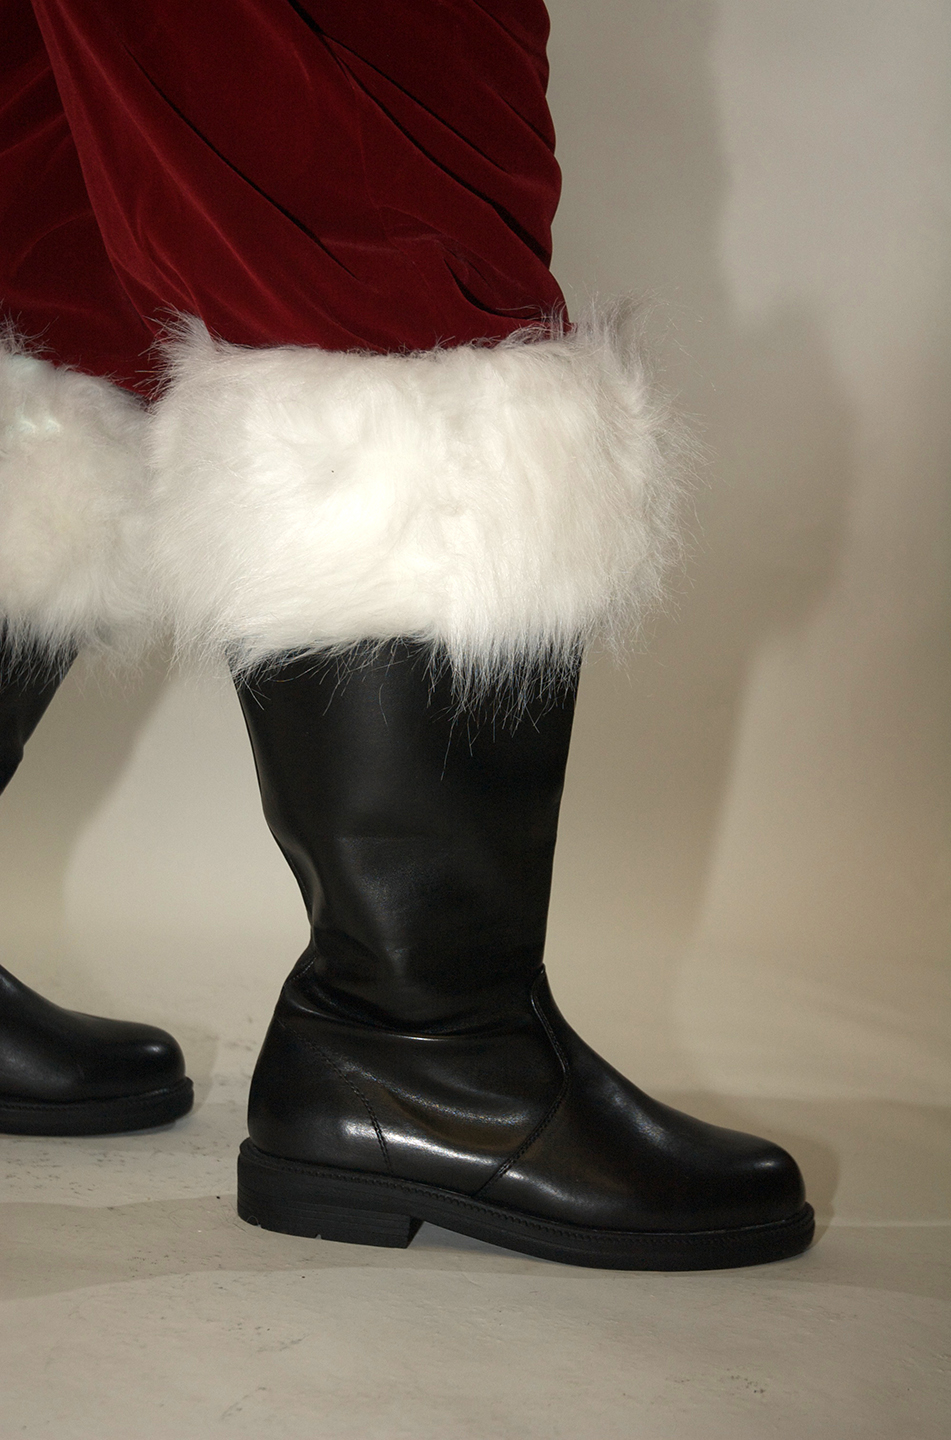 5a3780632959 Professional Wide Top Santa Claus Boot. »